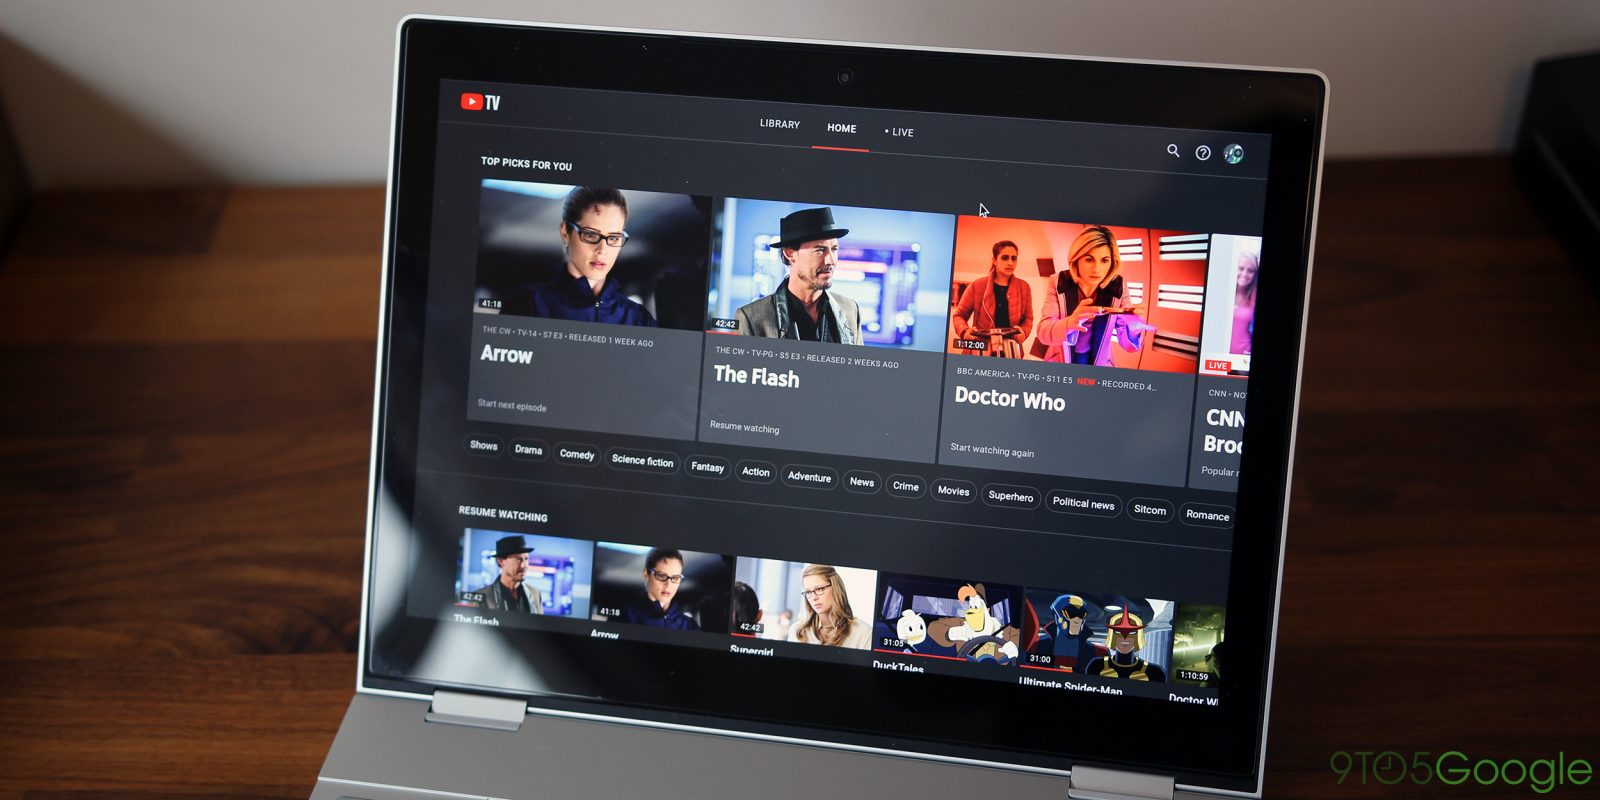 YouTube TV - 9to5Google